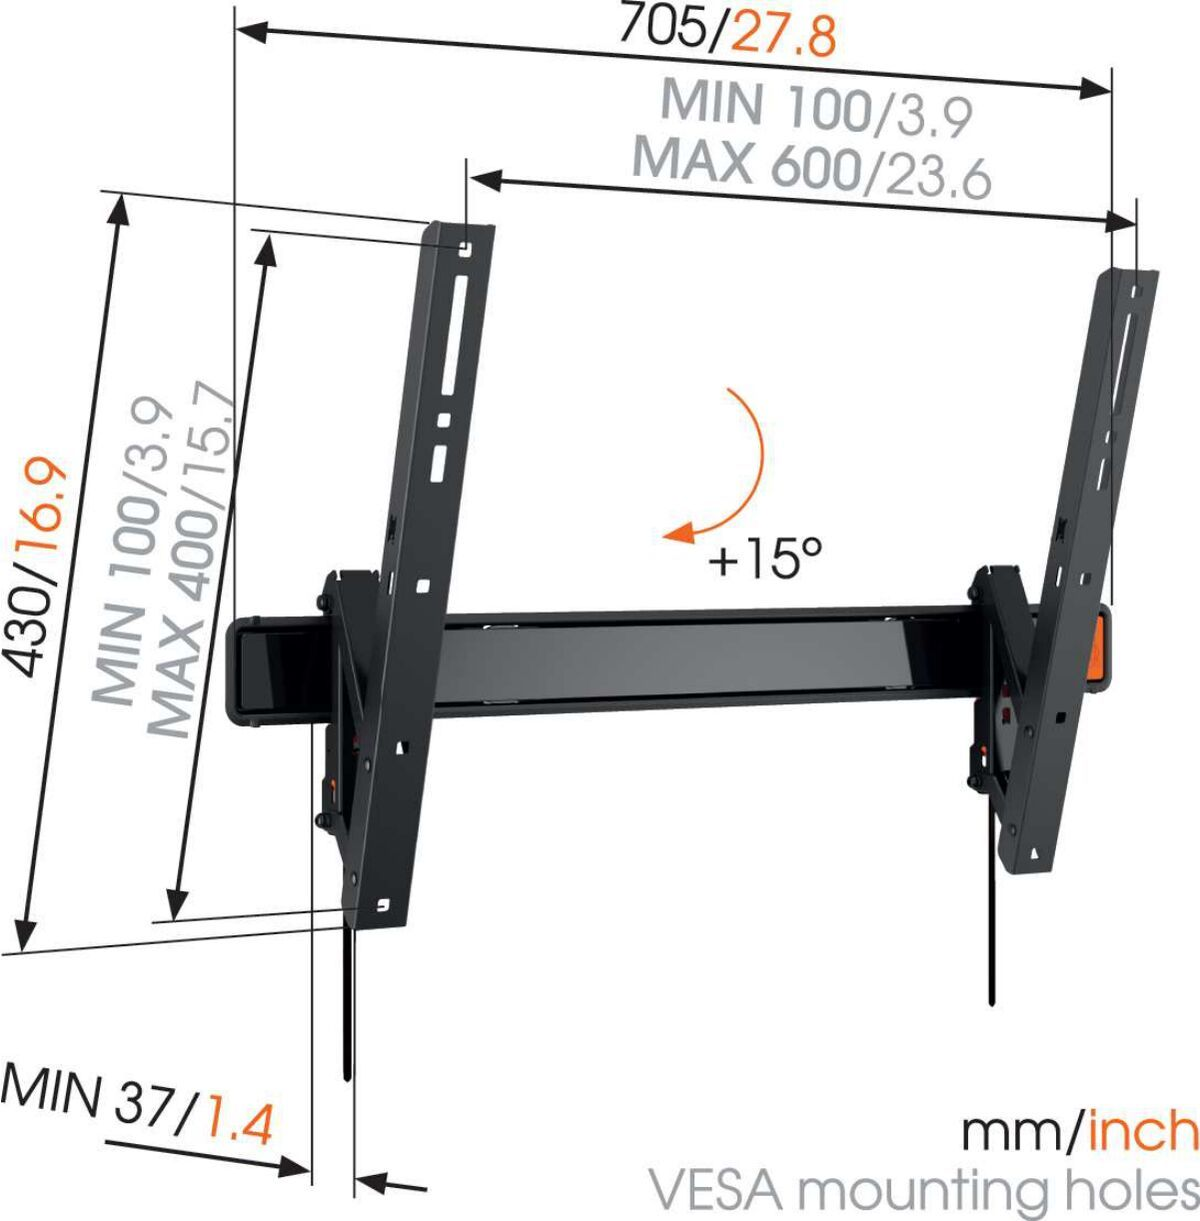 Vogel's W50810 Tilting TV Wall Mount - Suitable for 40 up to 65 inch TVs up to 40 kg - Tilt up to 15° - Dimensions